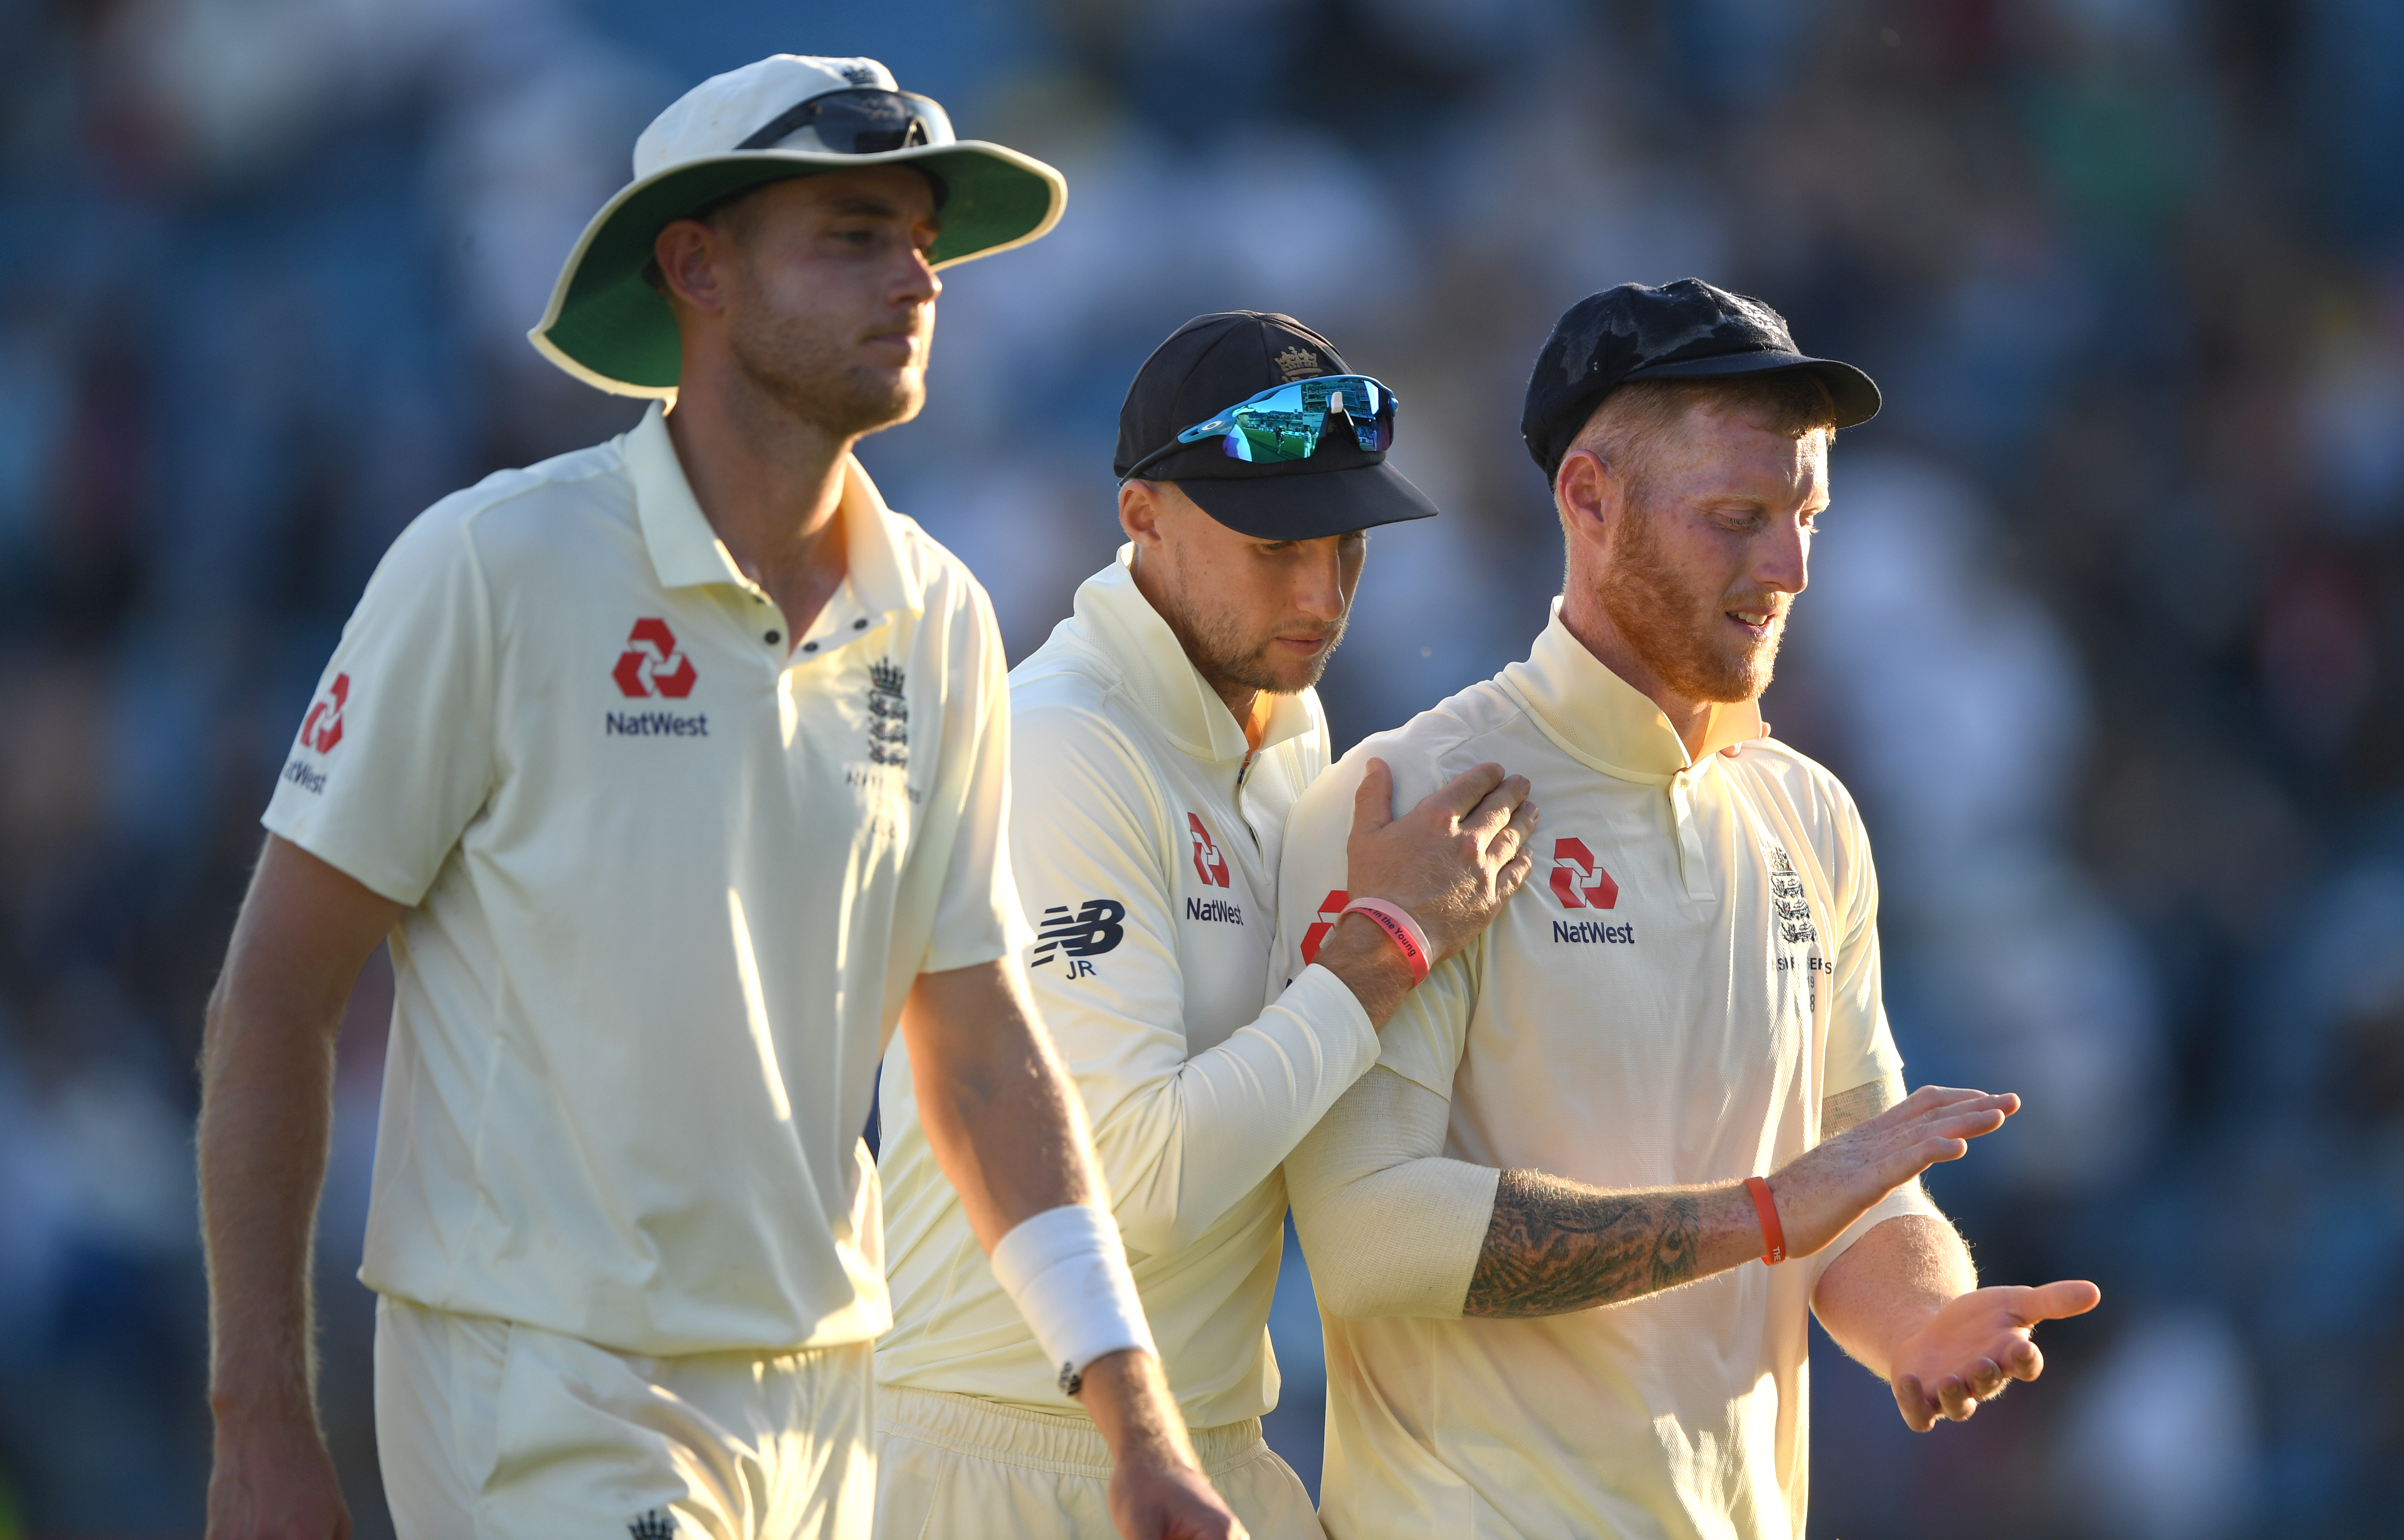 England fight for pride, WTC points in Bayliss' farewell Test - International Cricket Council thumbnail